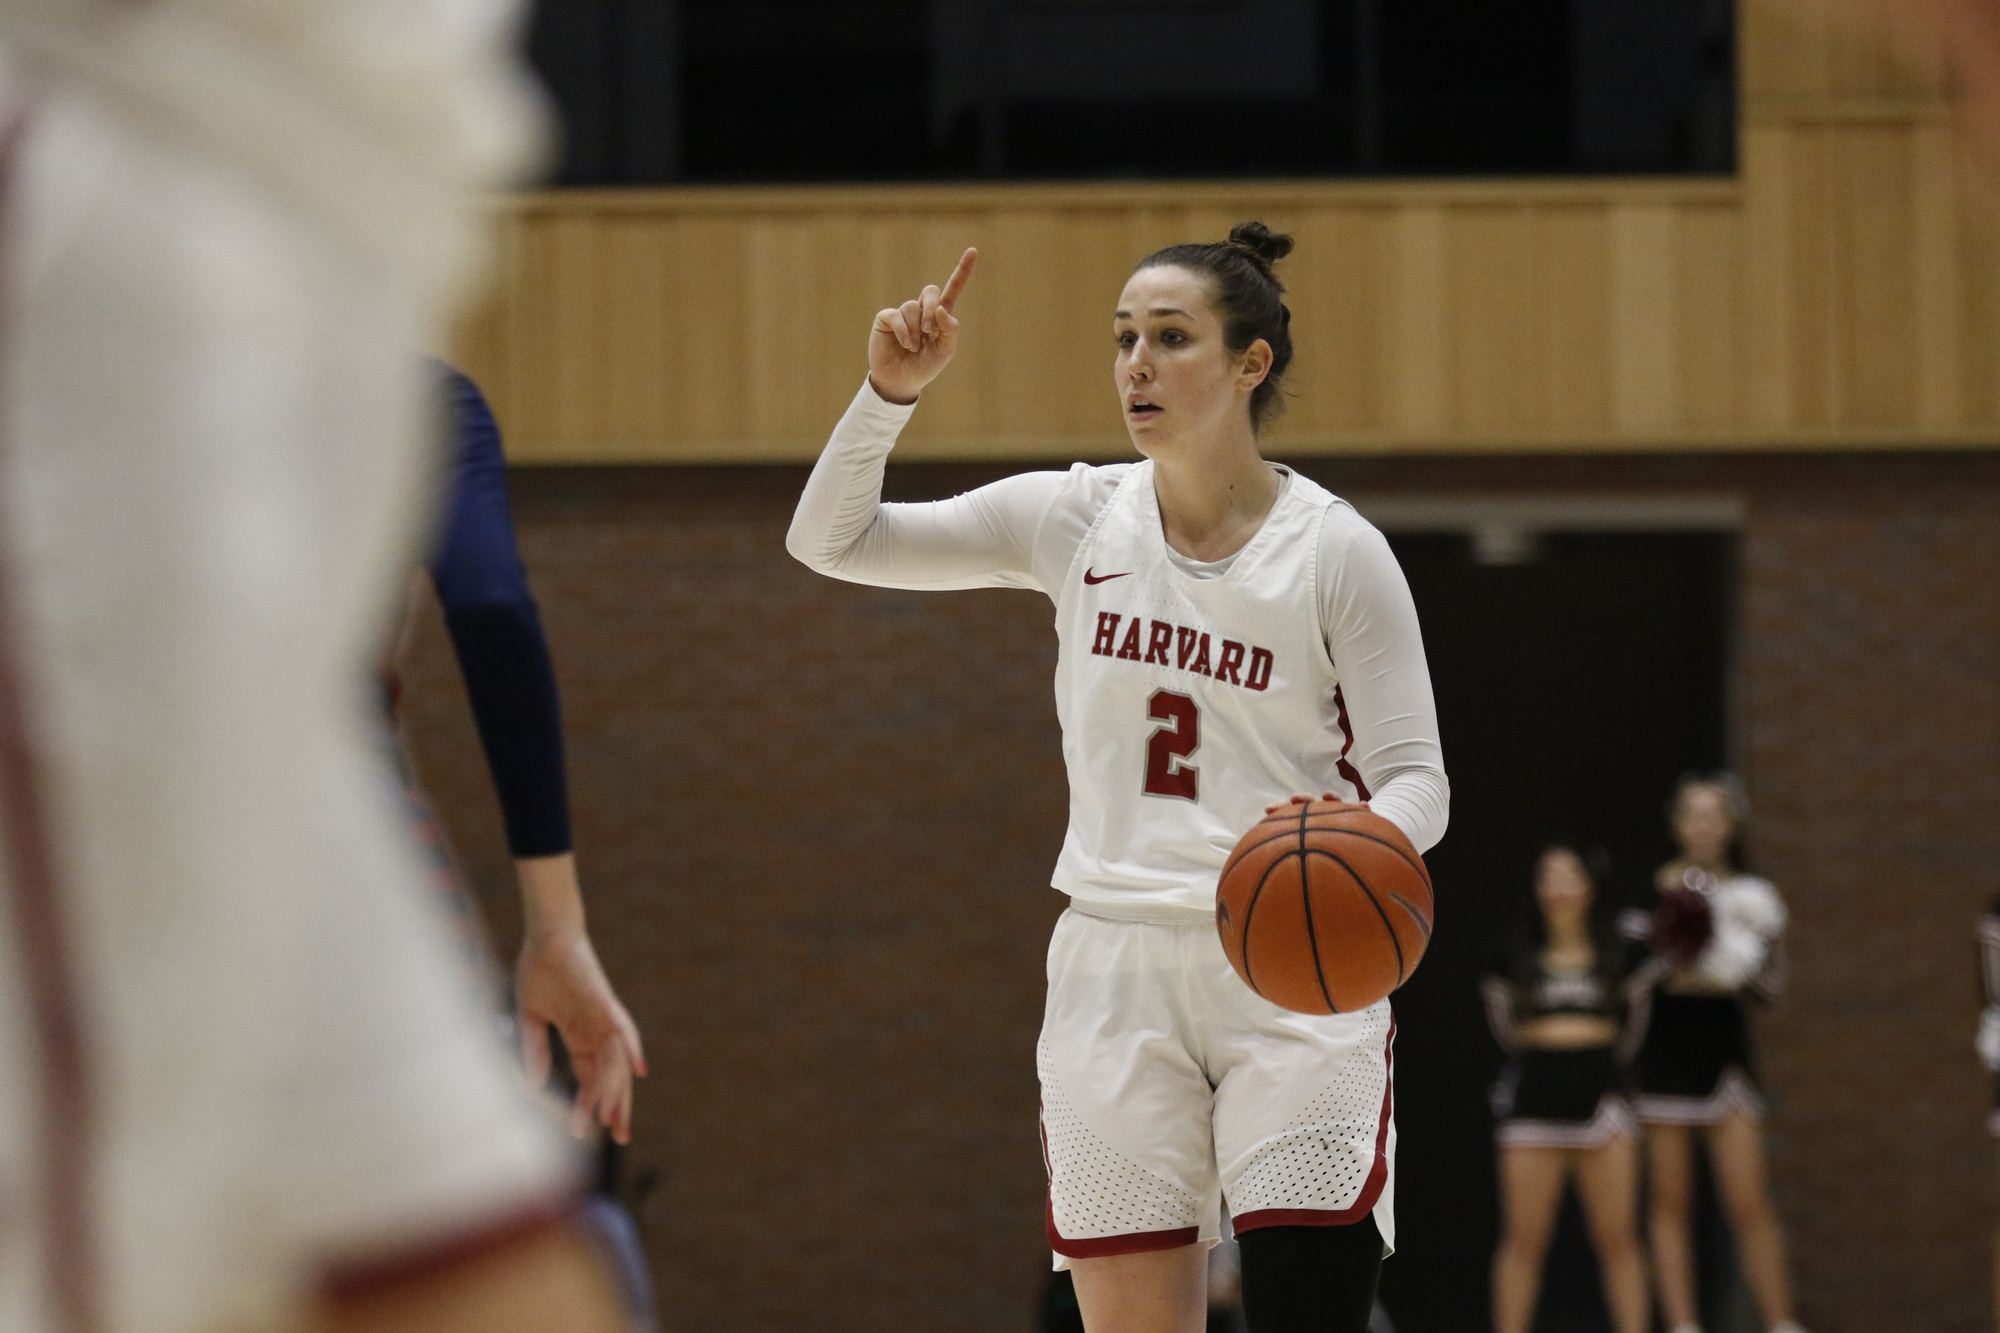 Sophomore guard Tess Sussman earned her first double-double of the season in Saturday's victory over Brown.